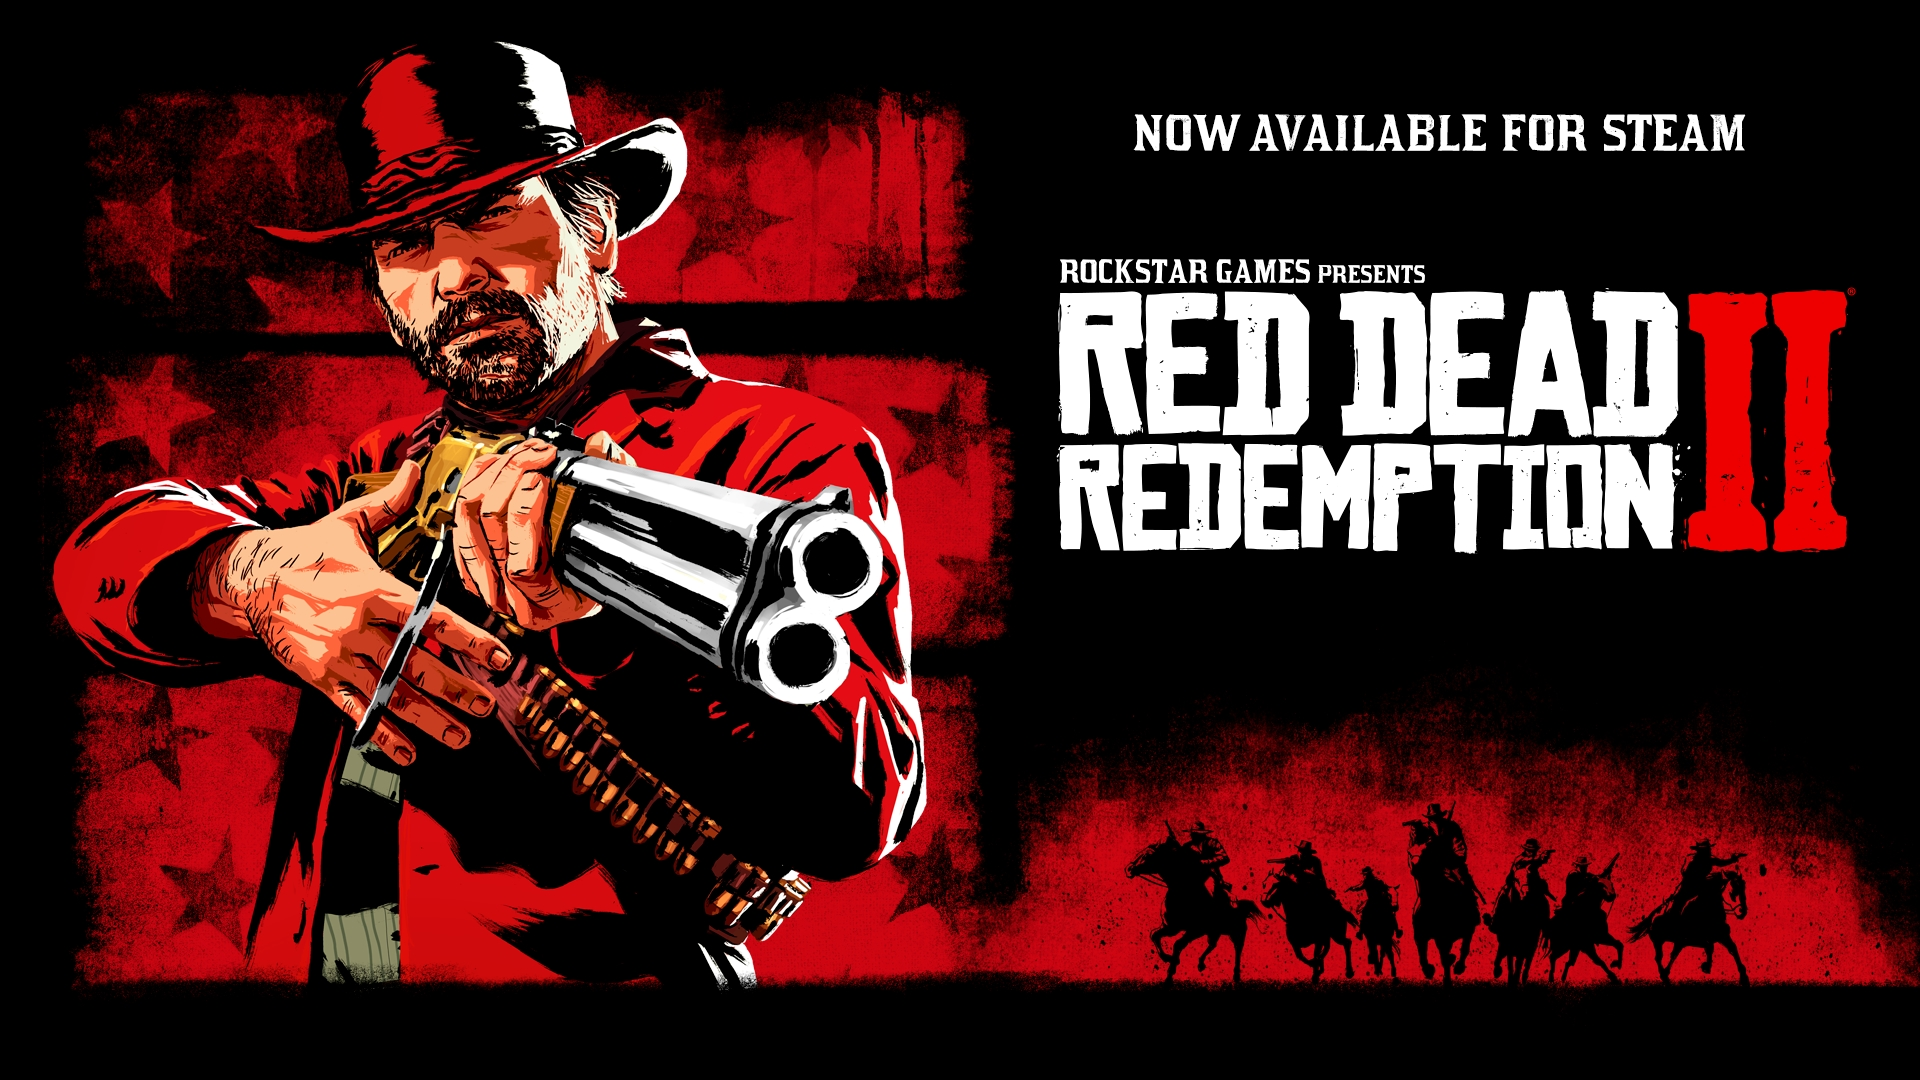 Red Dead Redemption 2 for PC Now Available on Steam